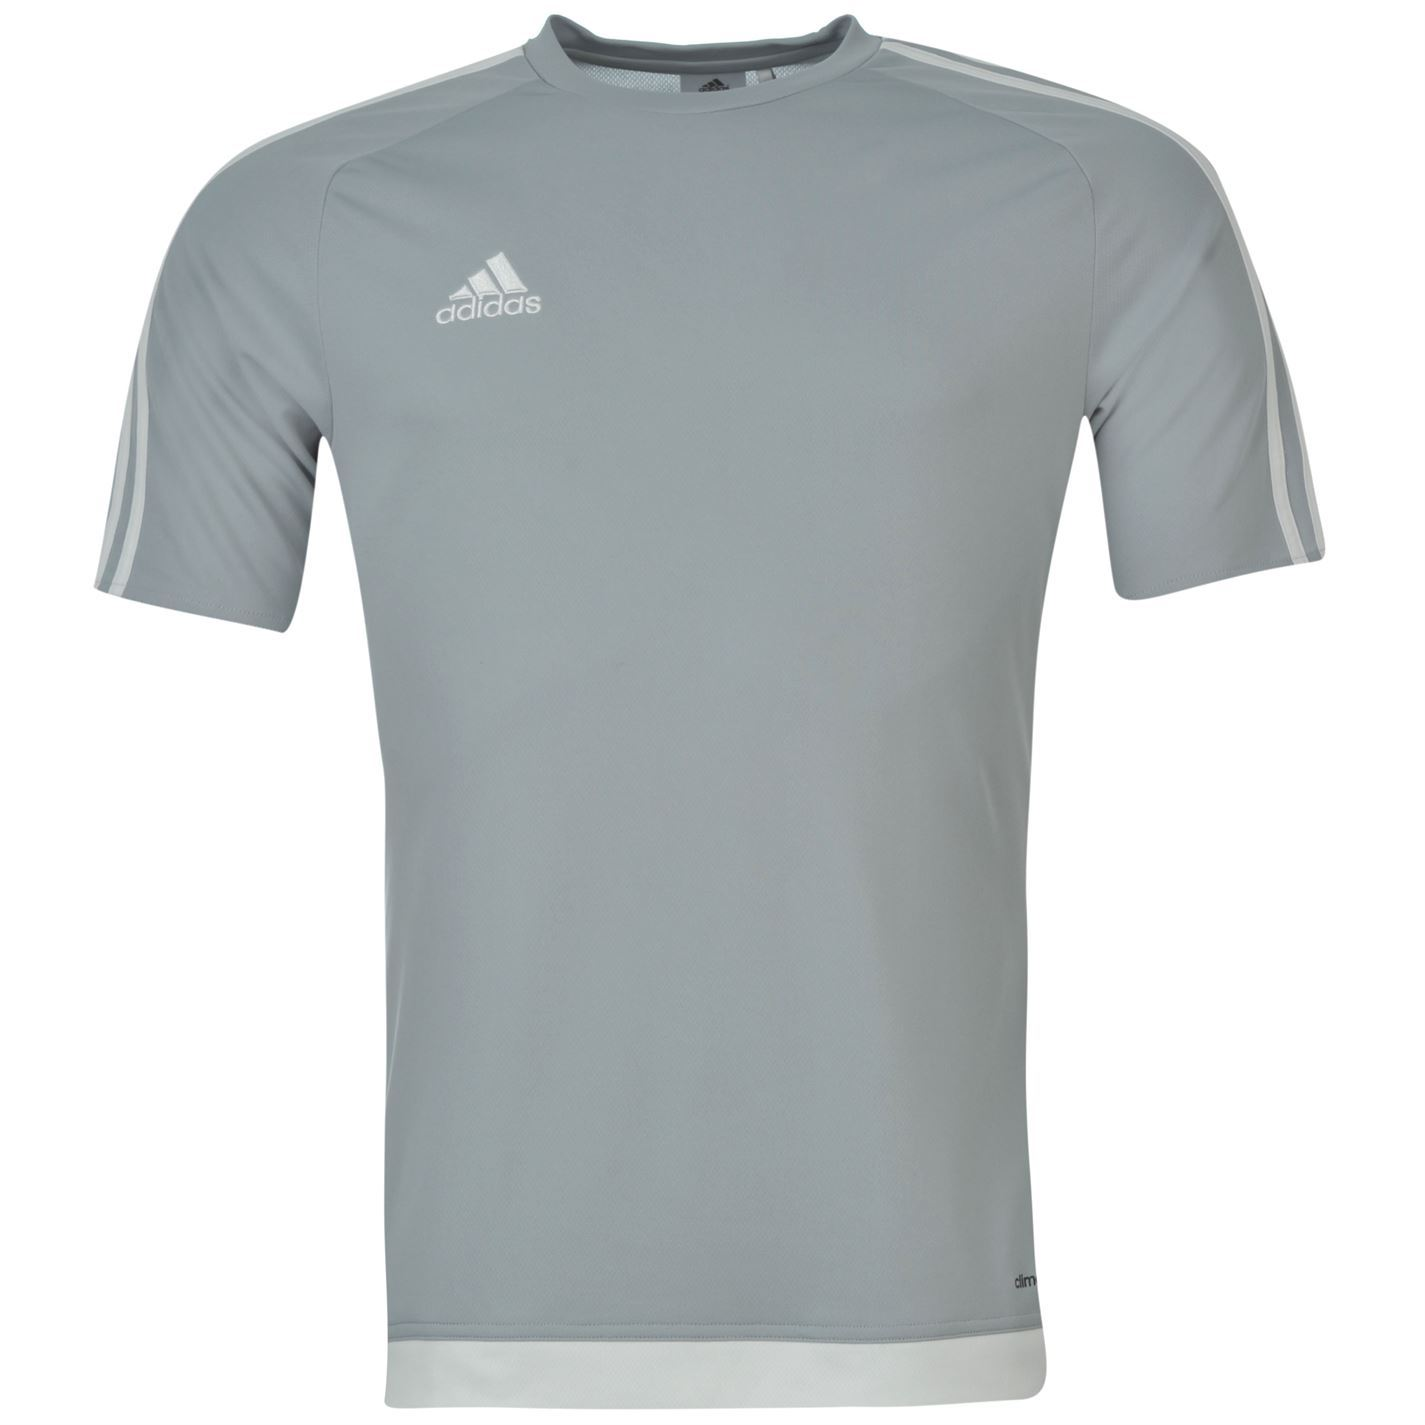 adidas 3 stripe estro climalite t shirt mens light grey sports top tee. Black Bedroom Furniture Sets. Home Design Ideas